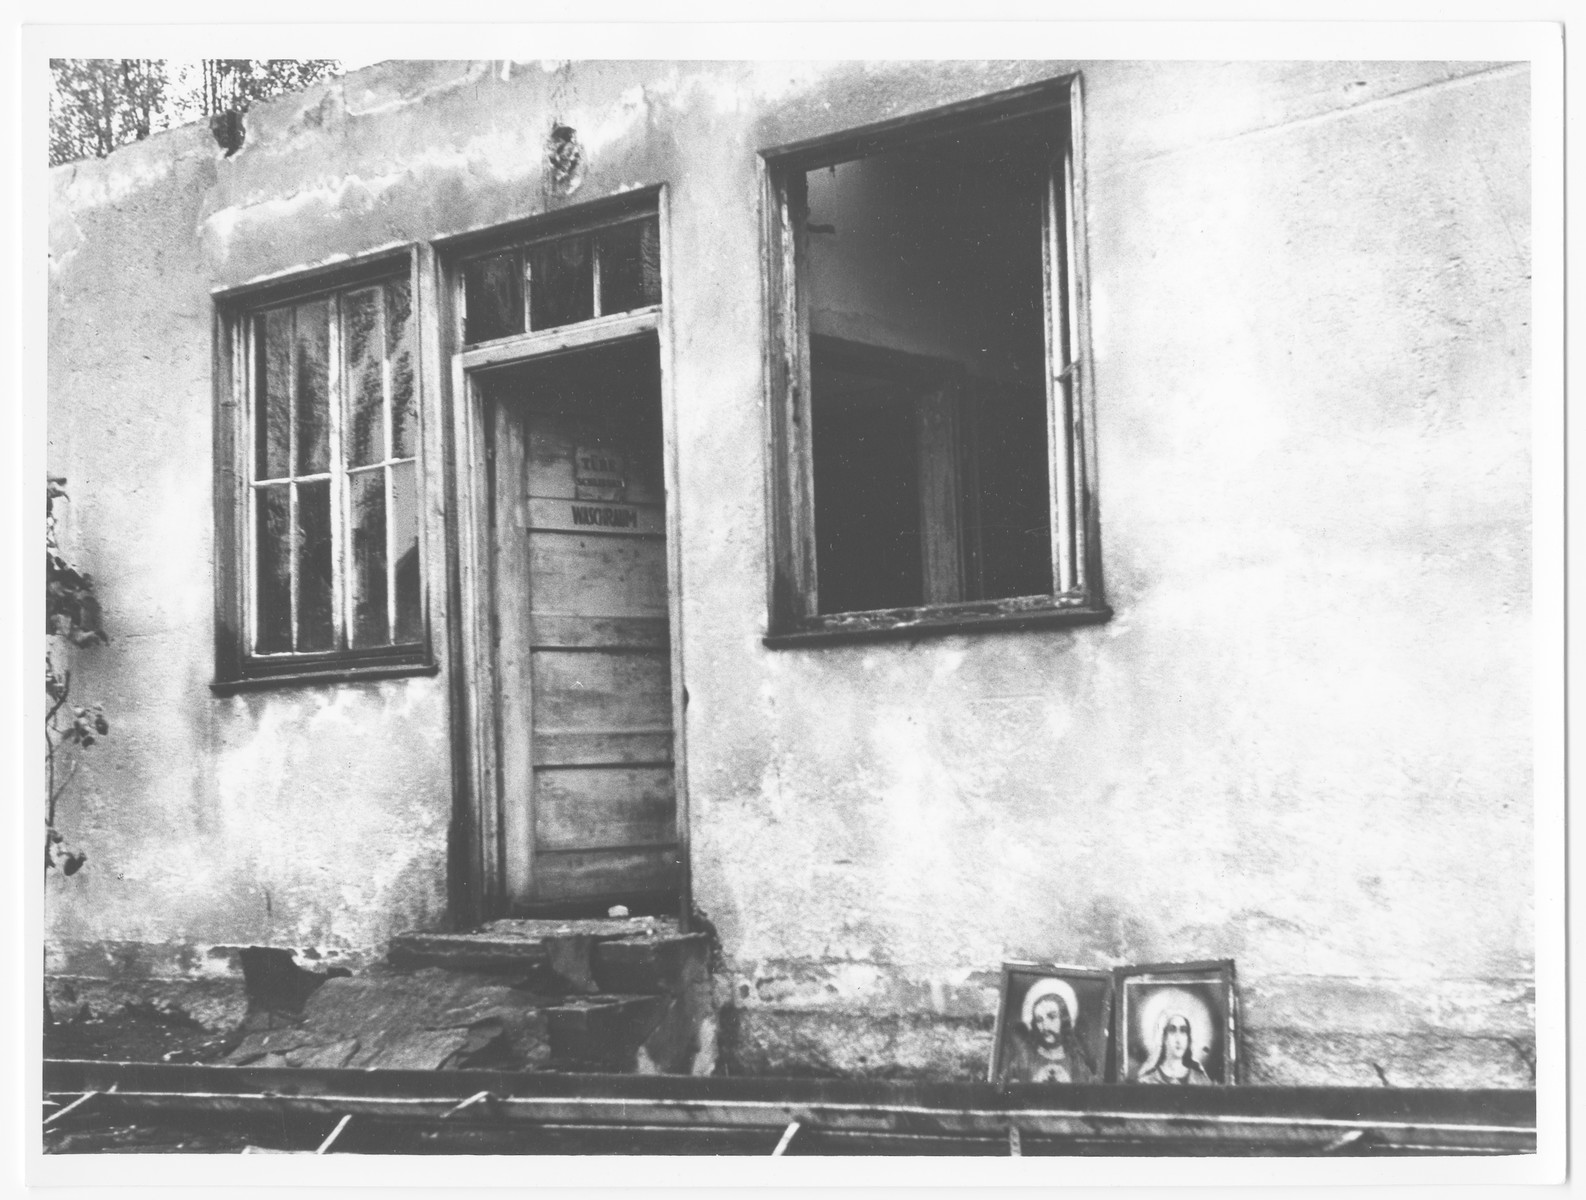 Postwar view of a barrack in Dachau with portraits of Jesus and Mary propped up against it.